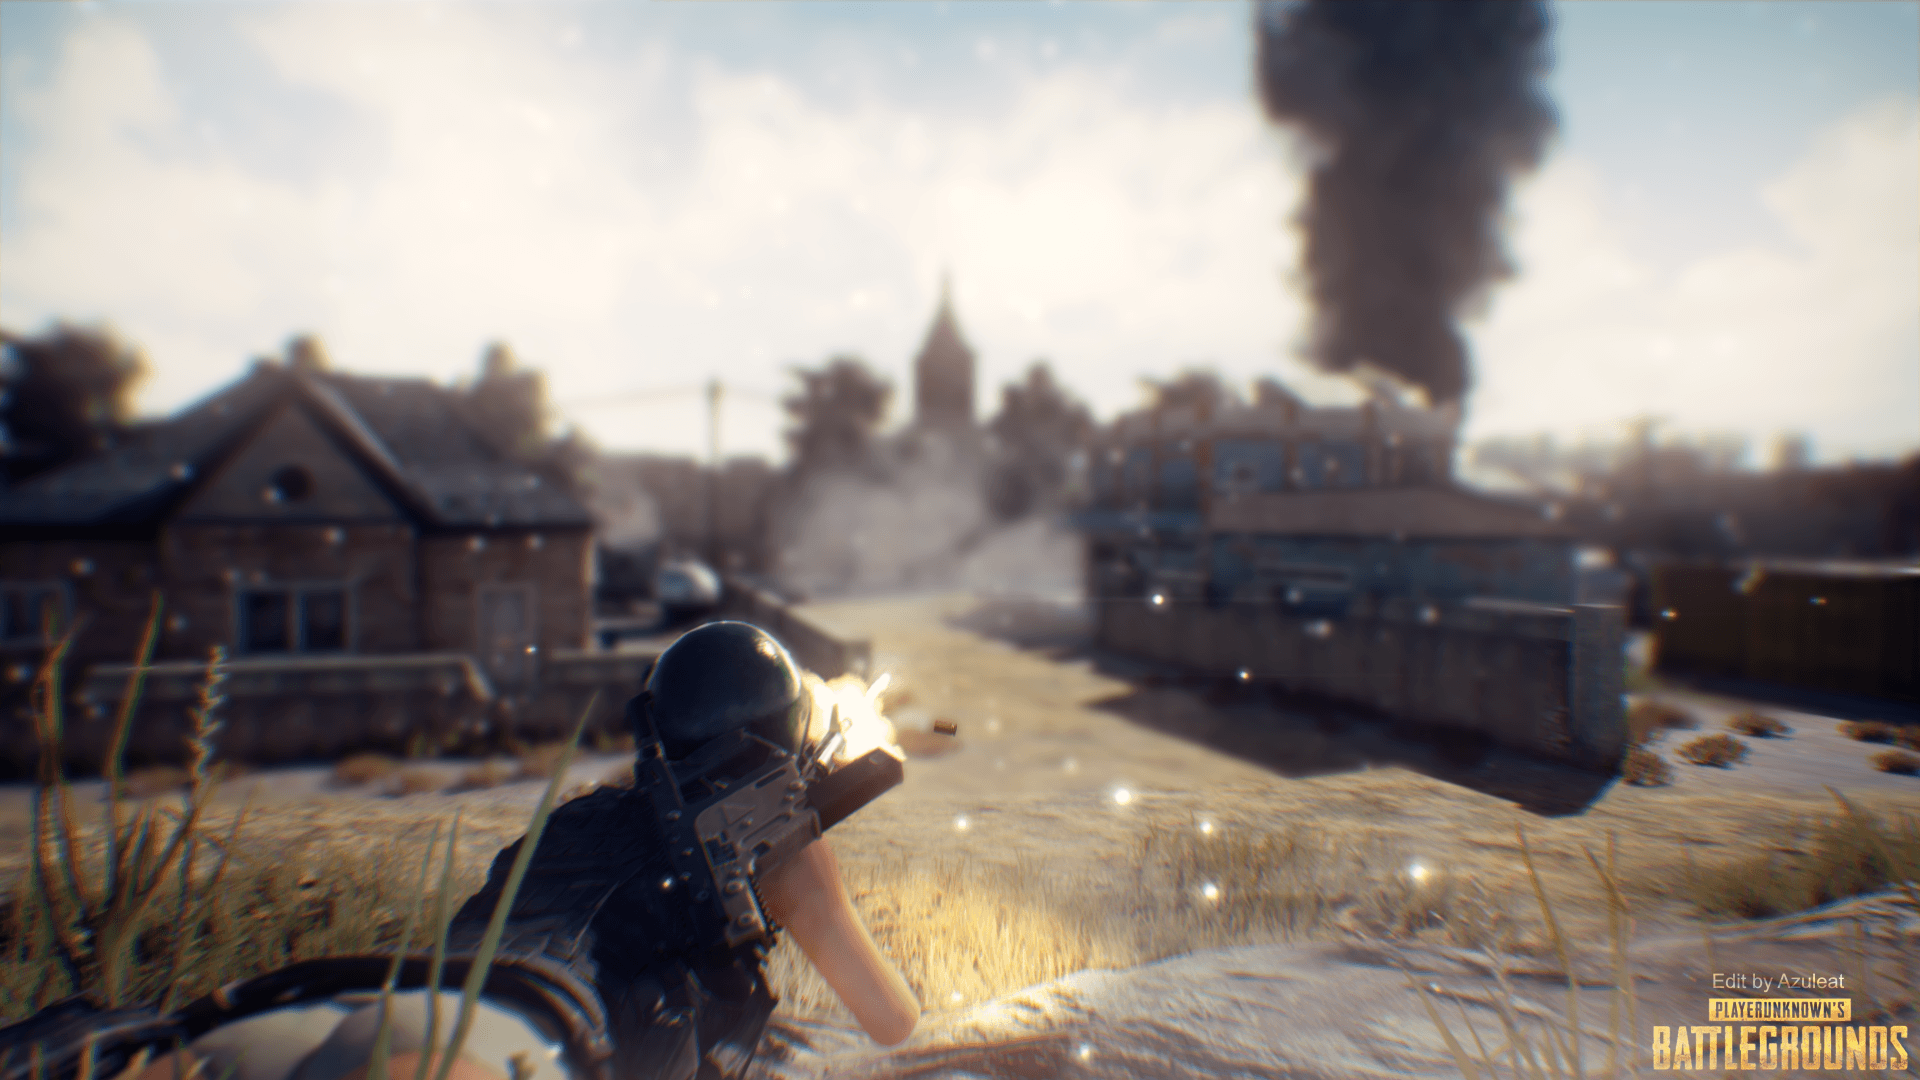 Pubg Wallpapers Hd 1080p: PlayerUnknown's Battlegrounds Wallpapers